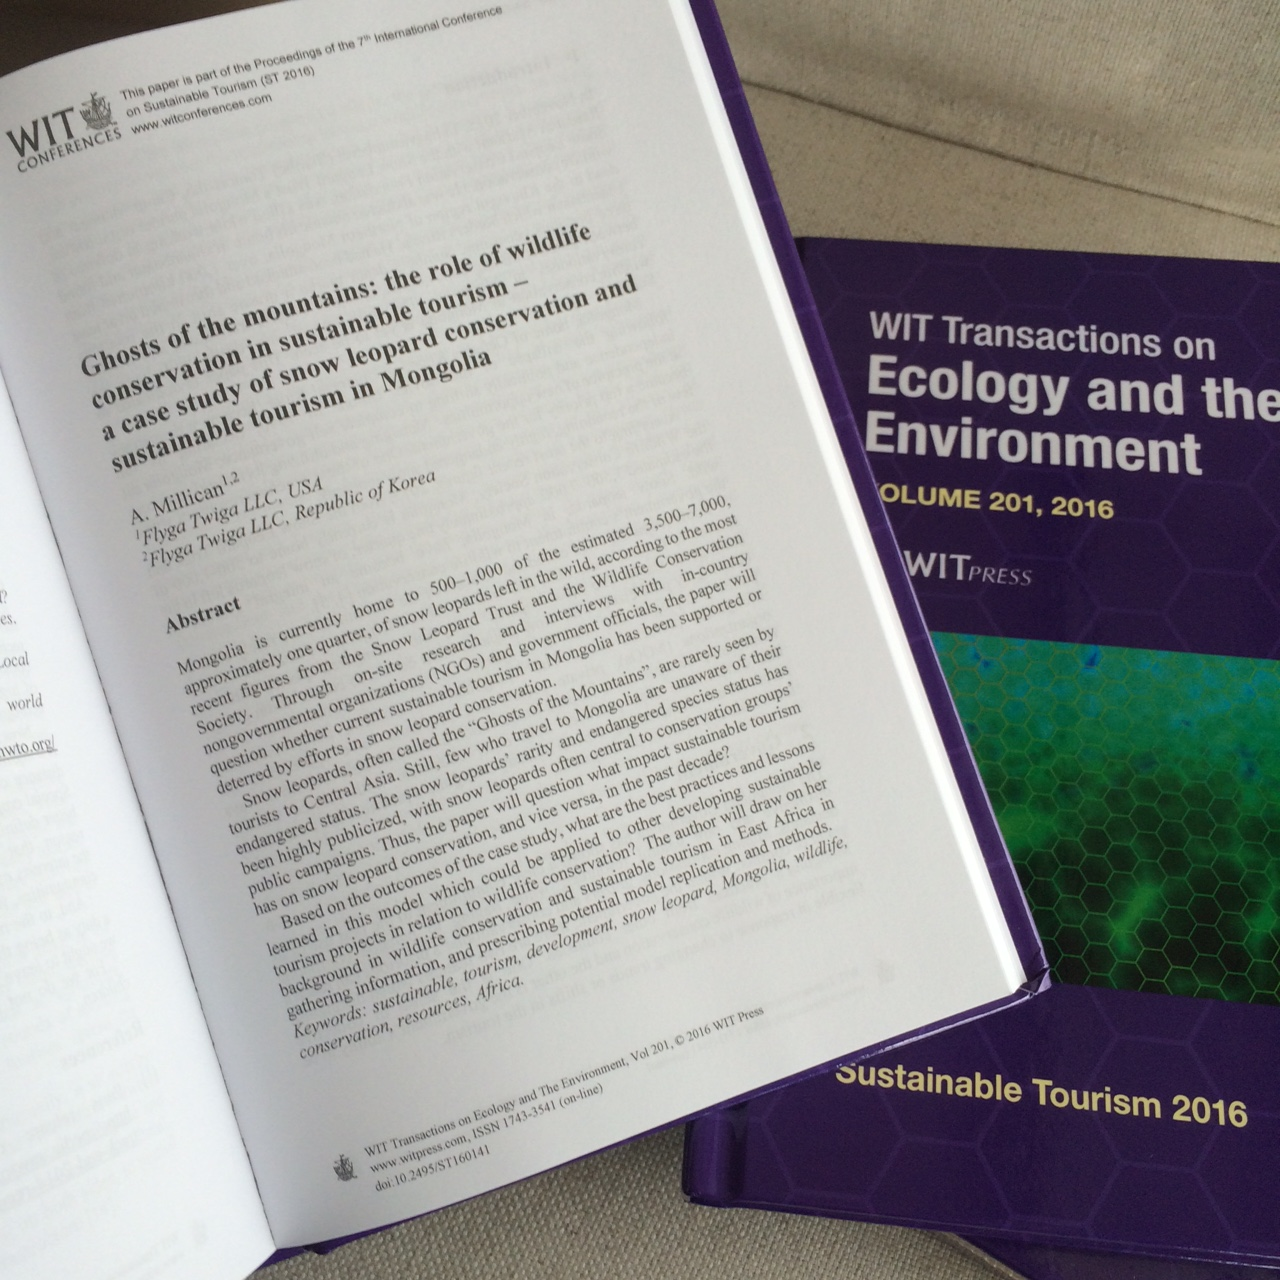 WIT Transactions on Ecology and the Environment © Flyga Twiga LLC